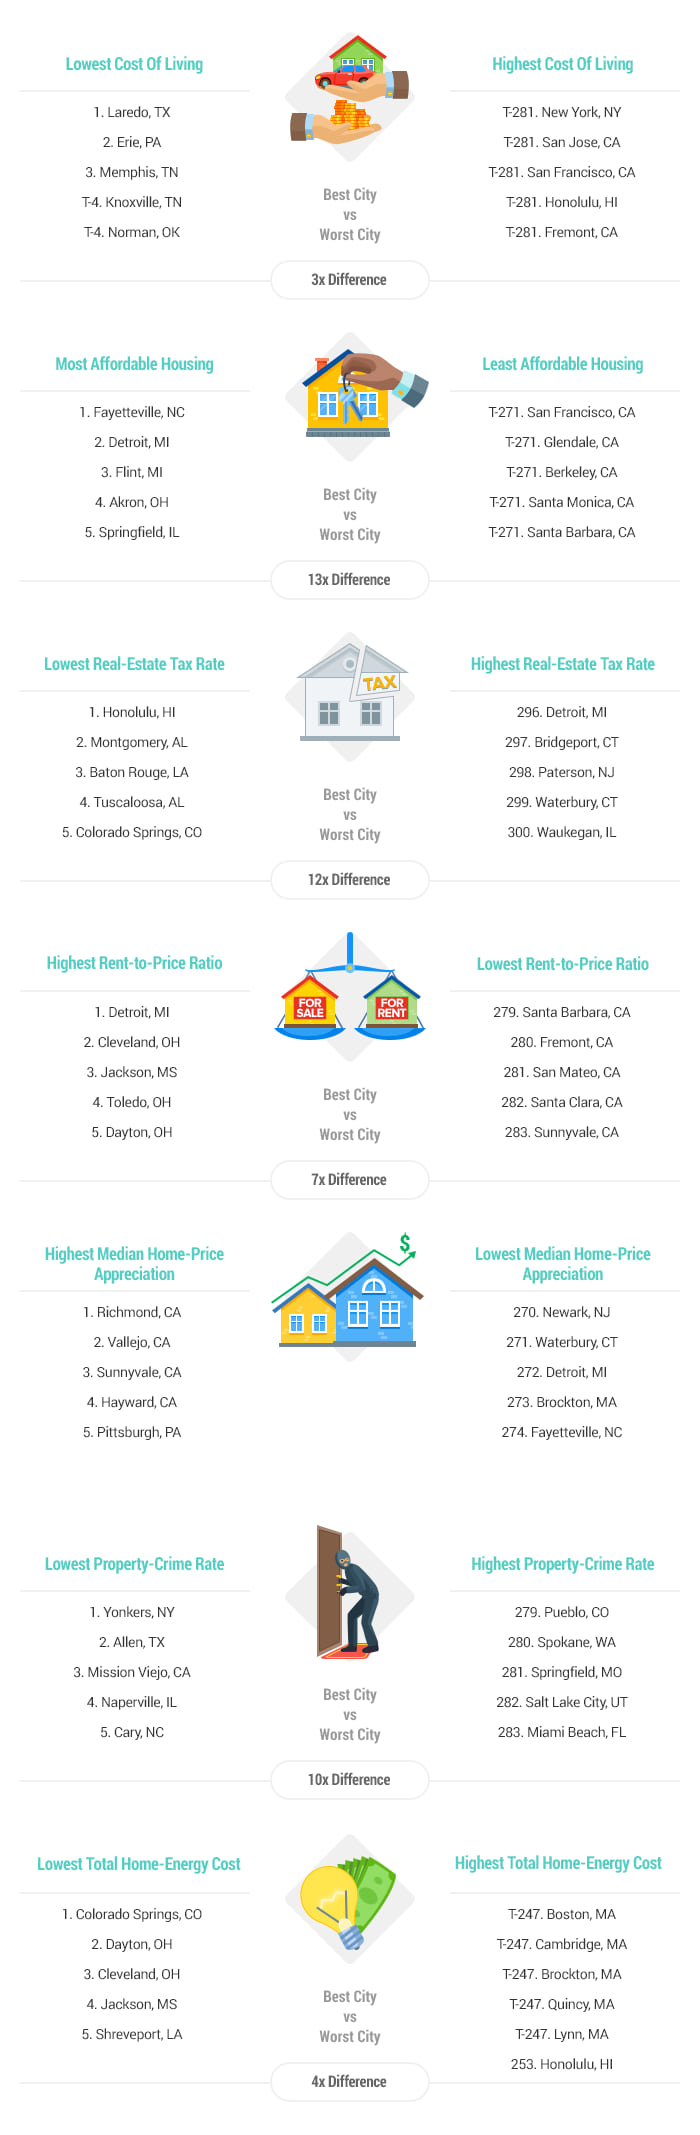 Artwork-2017-Best-Cities-for-First-Time-Home-Buyers-v2